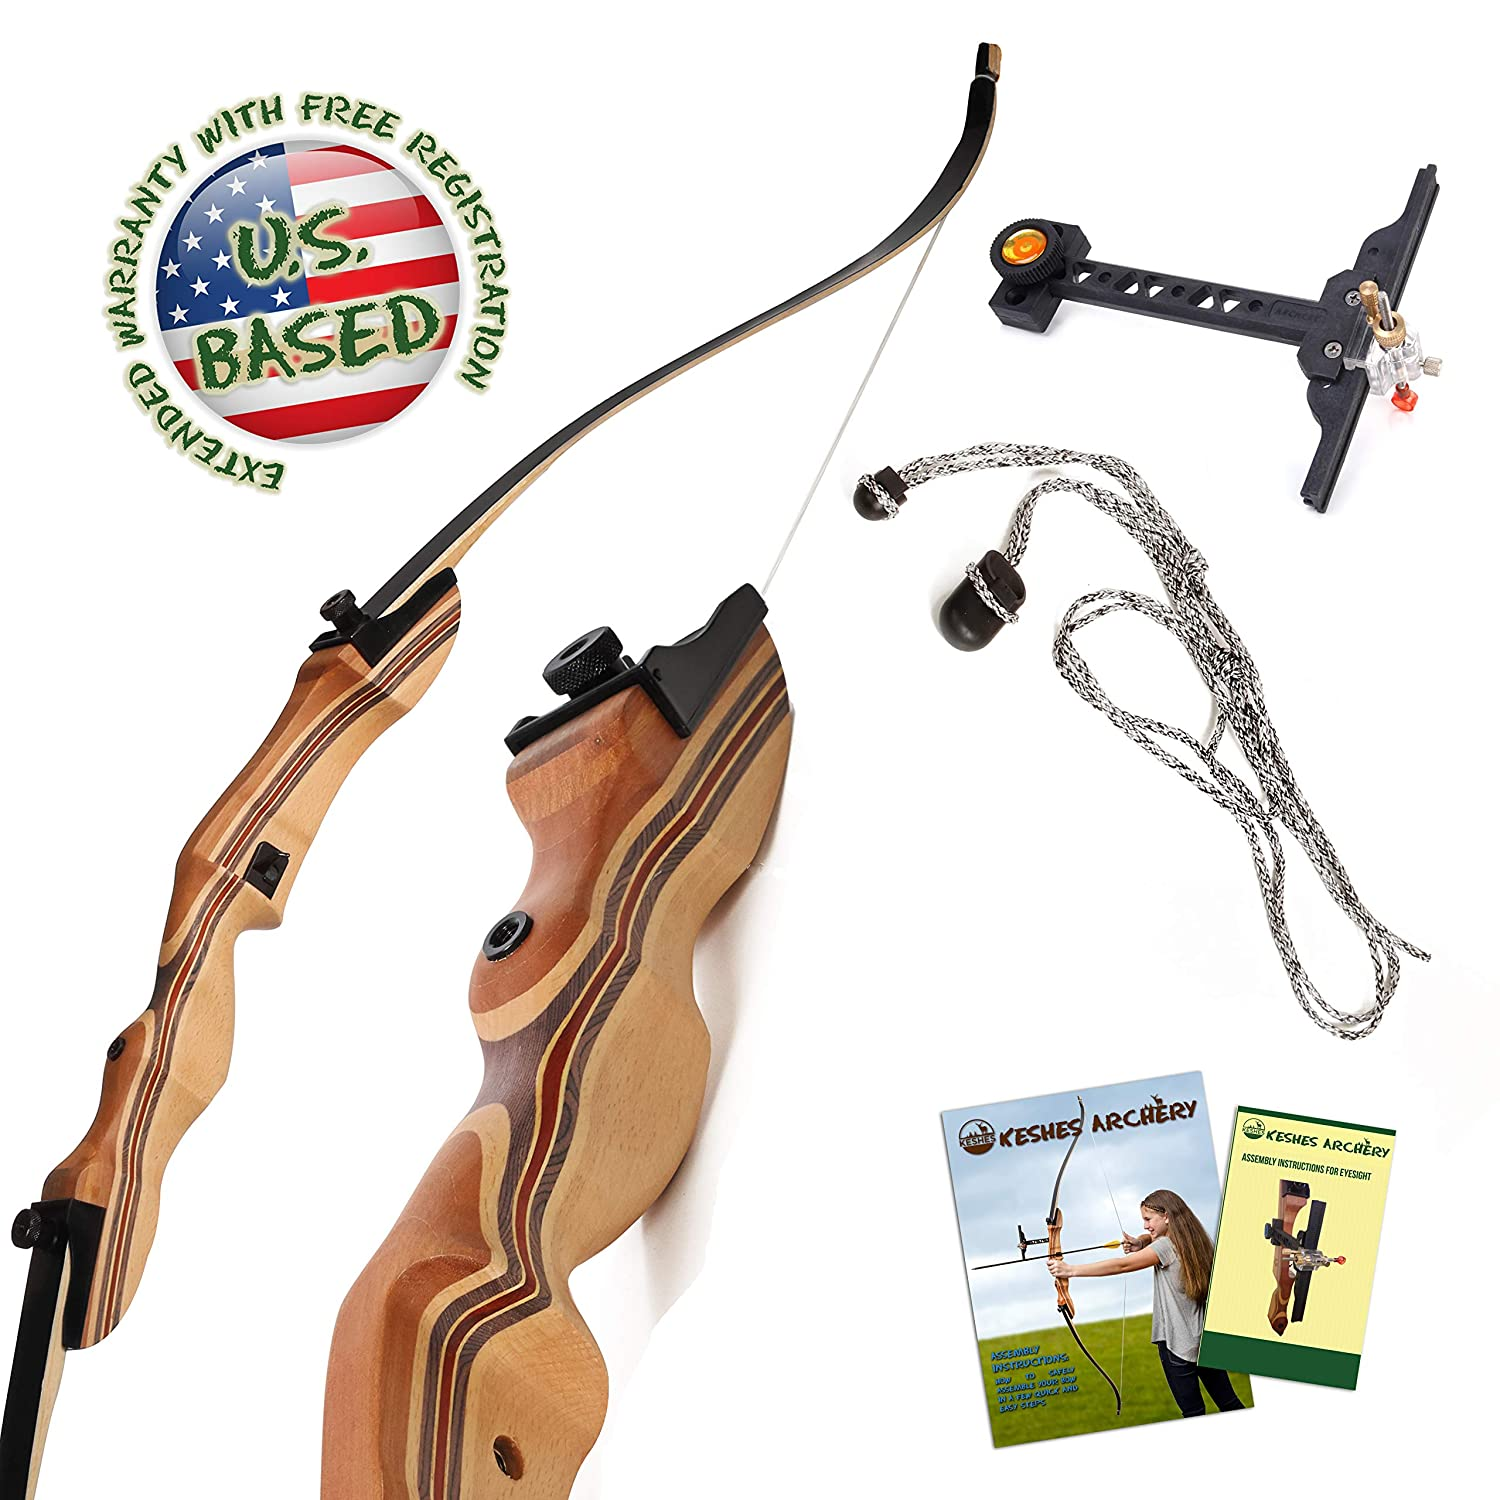 KESHES Takedown Hunting Recurve Bow and Arrow – 62 Archery Bow for Teens and Adults, 15-55lb Draw Weight – Right and Left Handed, Archery Set Bowstring Arrow Rest Stringer Tool Sight, Instructions